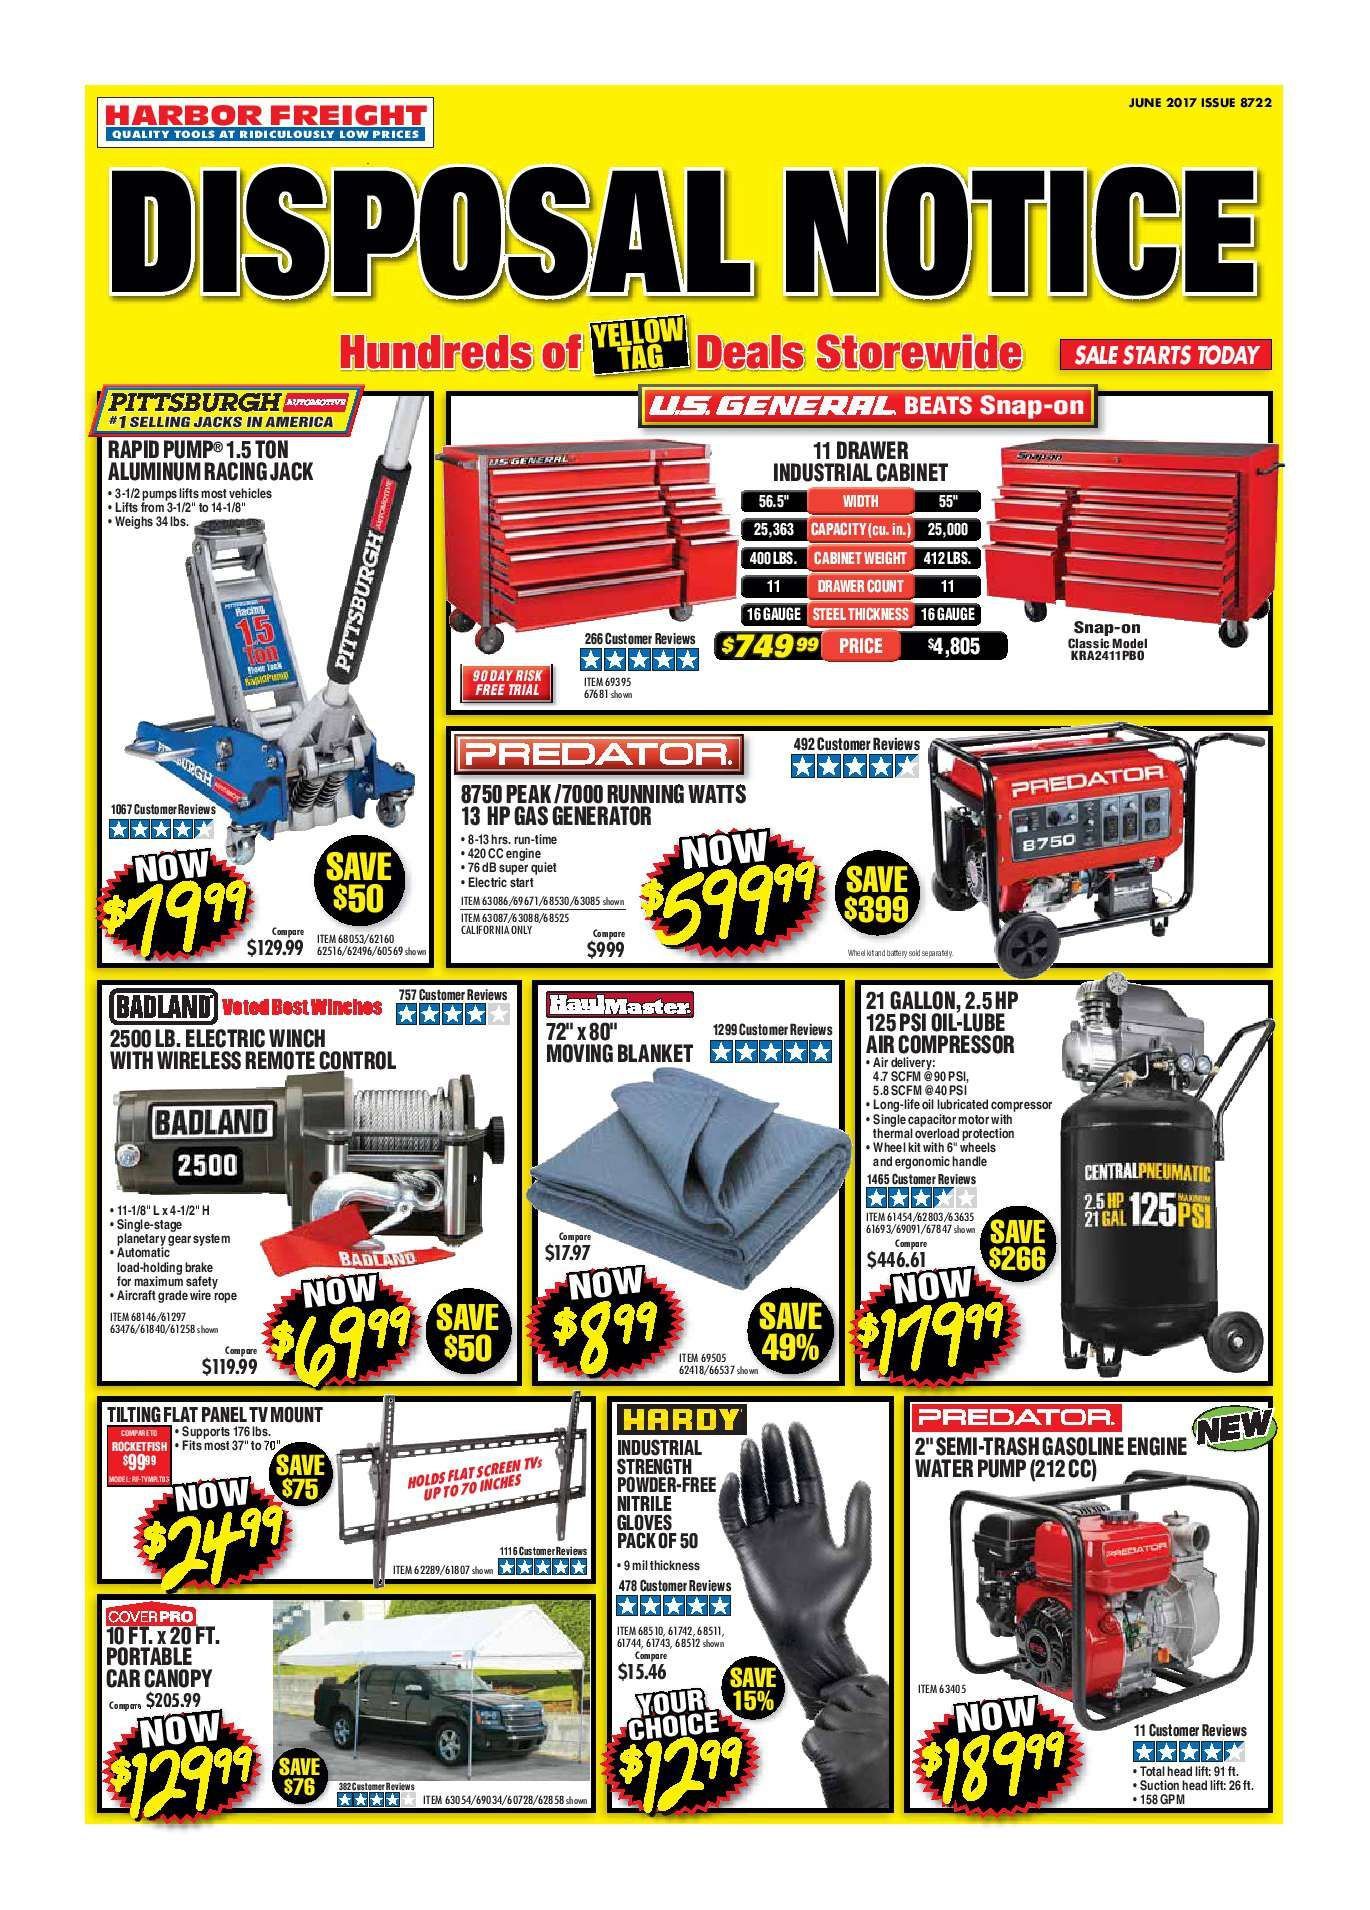 Harbor freight tools monthly ad june 2017 httpolcatalog harbor freight tools ad december 2017 do you know whats in and whats hot in the harbor freight tools for this week this harbor freight tools weekly ad greentooth Images